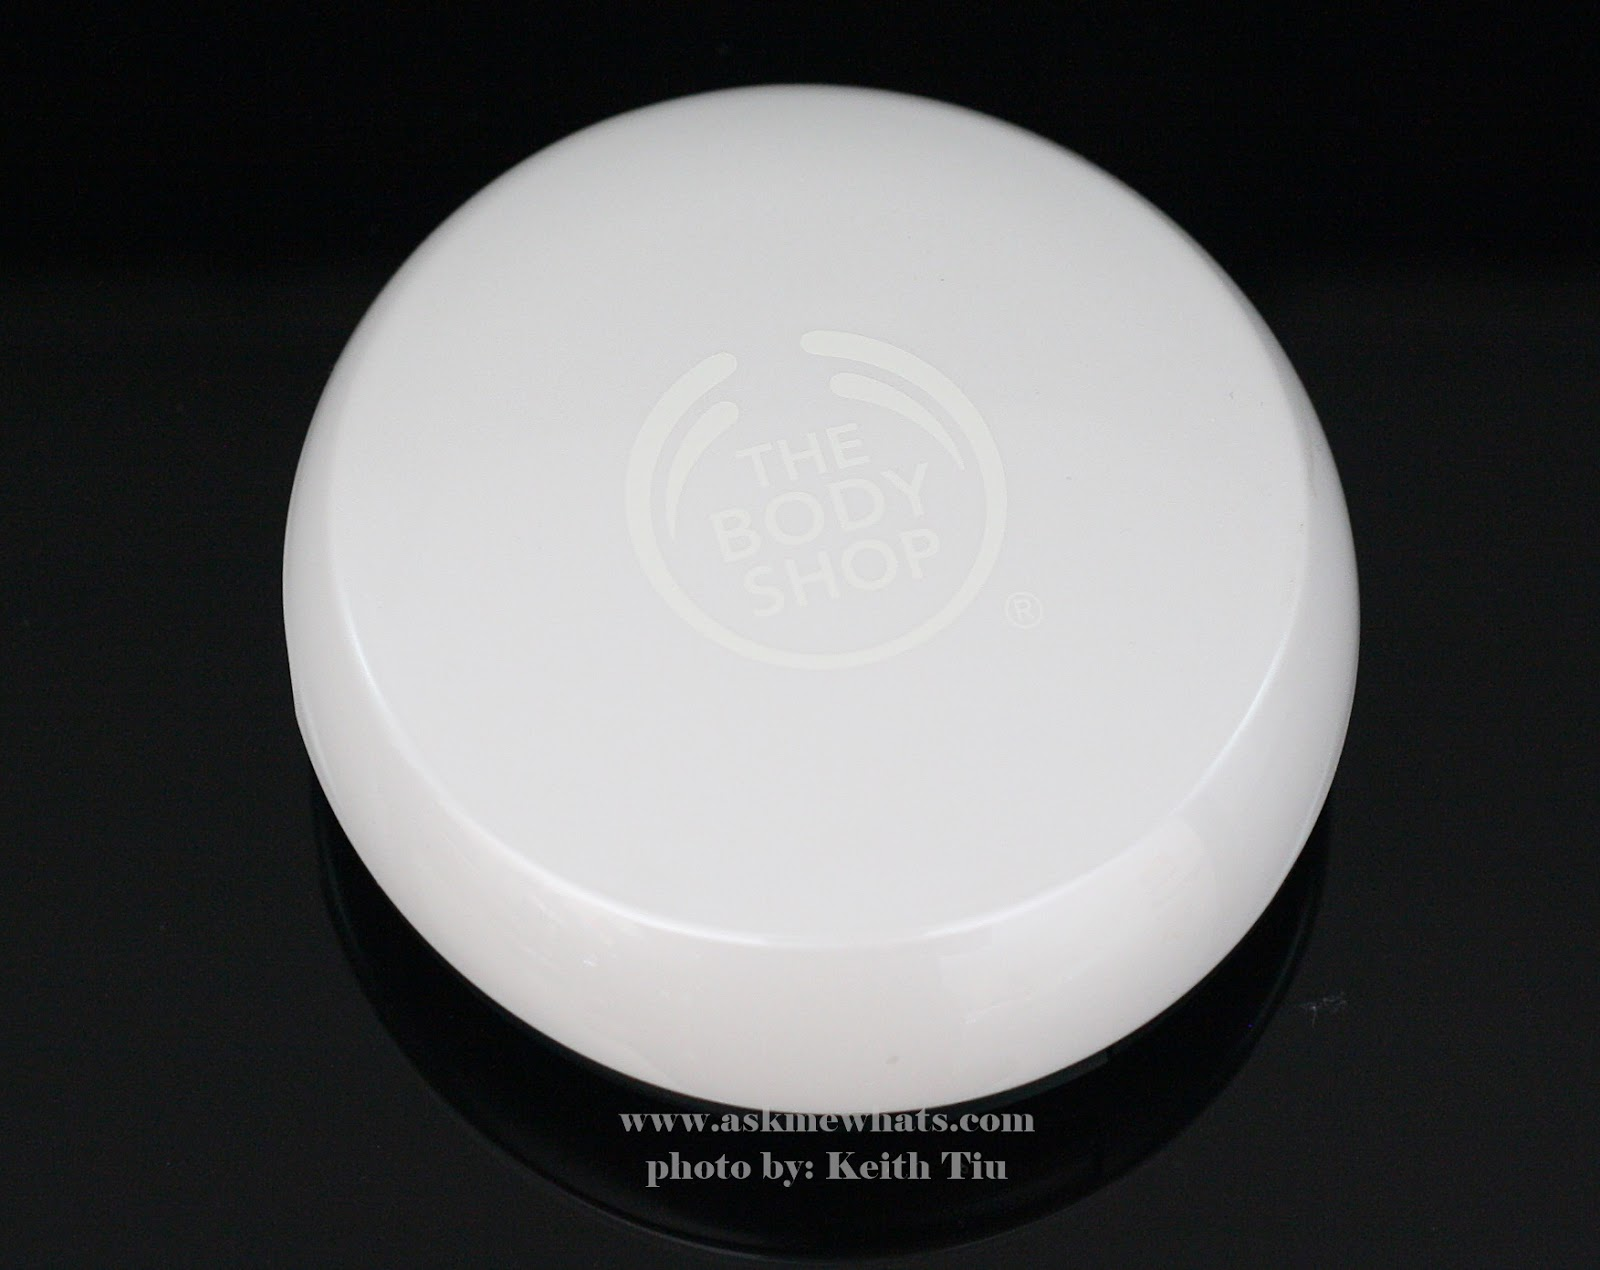 photo of The Body Shop New Moisture White Bright Compact Foundation SPF25 PA+++ Review